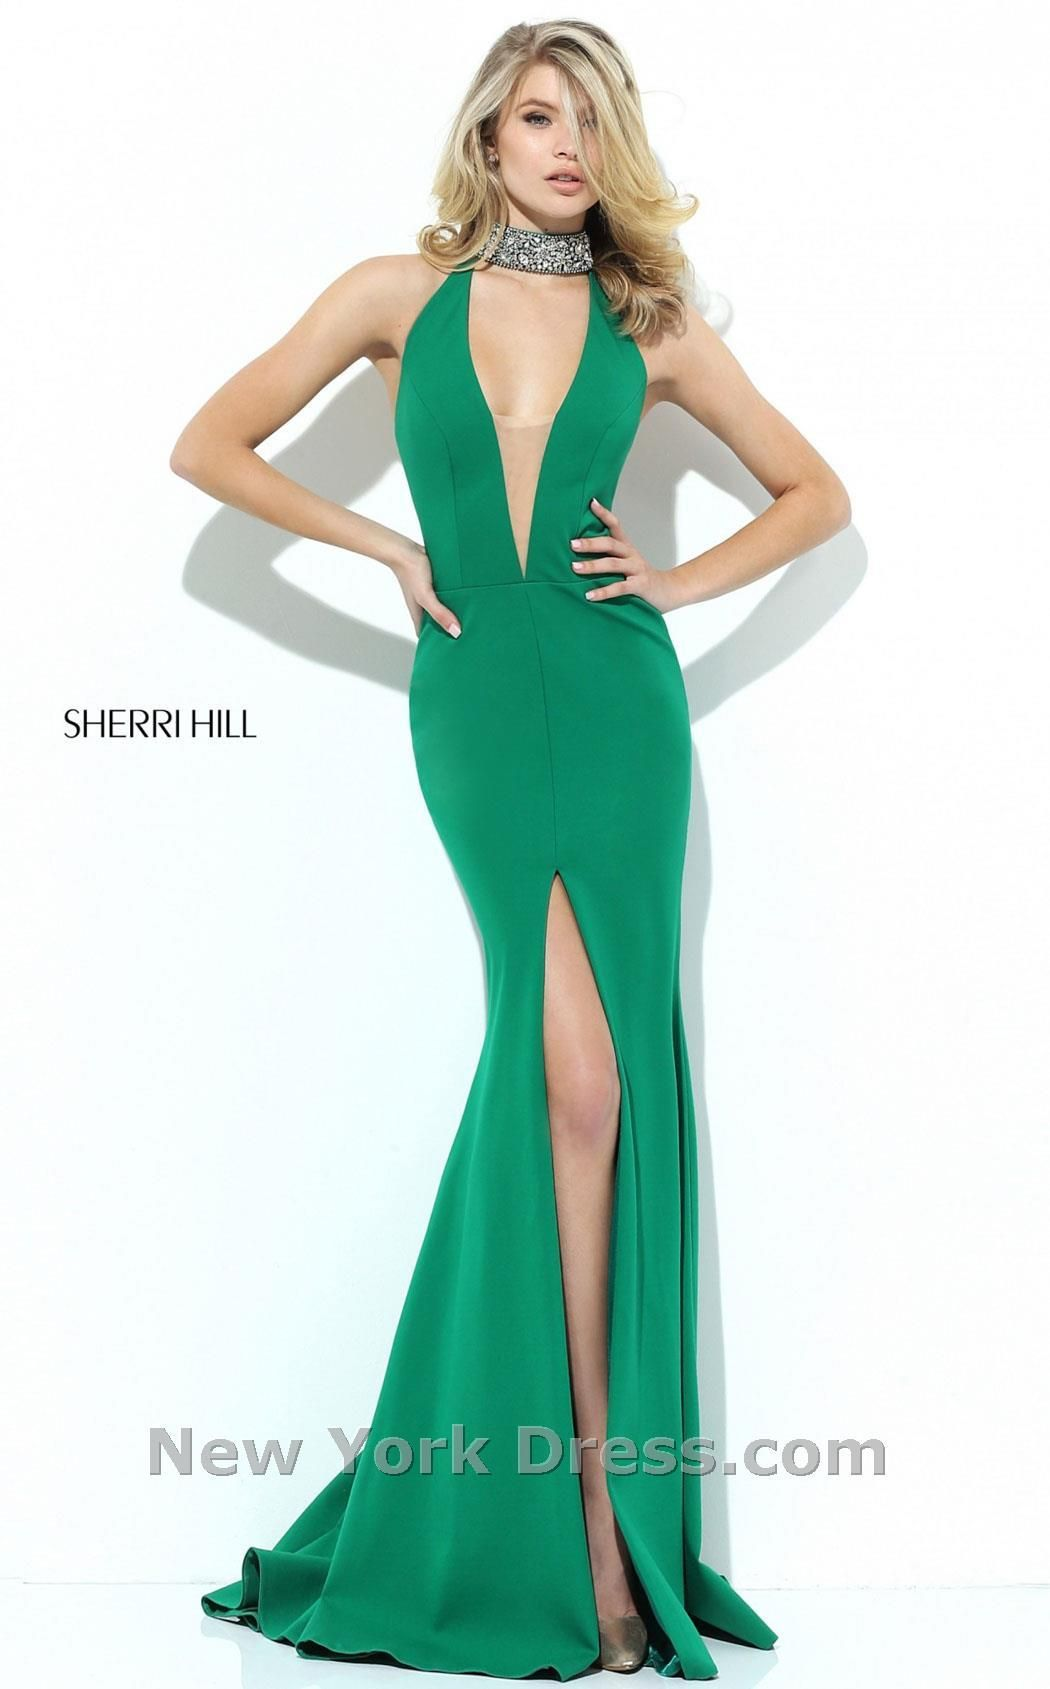 Sherri hill in amazing dresses pinterest dresses